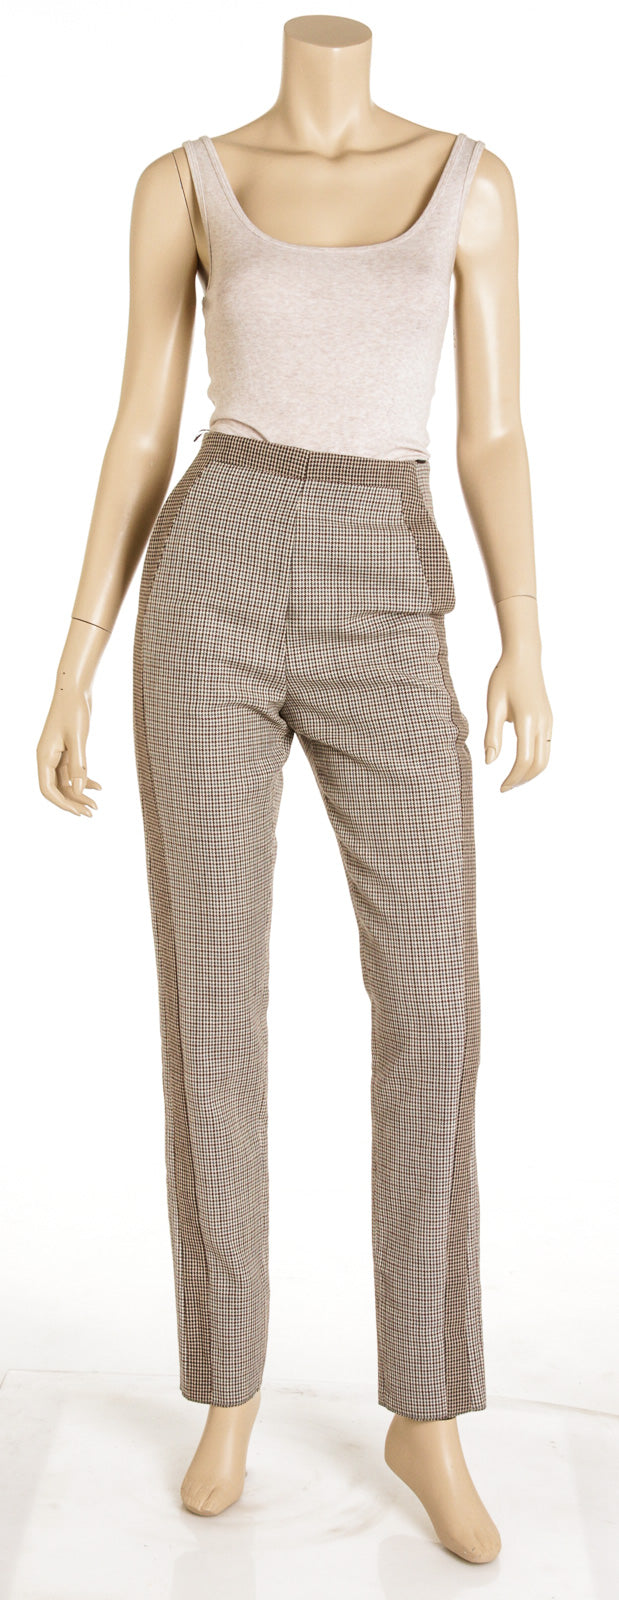 Roberto Cavalli Gray Brown Houndstooth Print Wool Trousers (Size 38) NEW